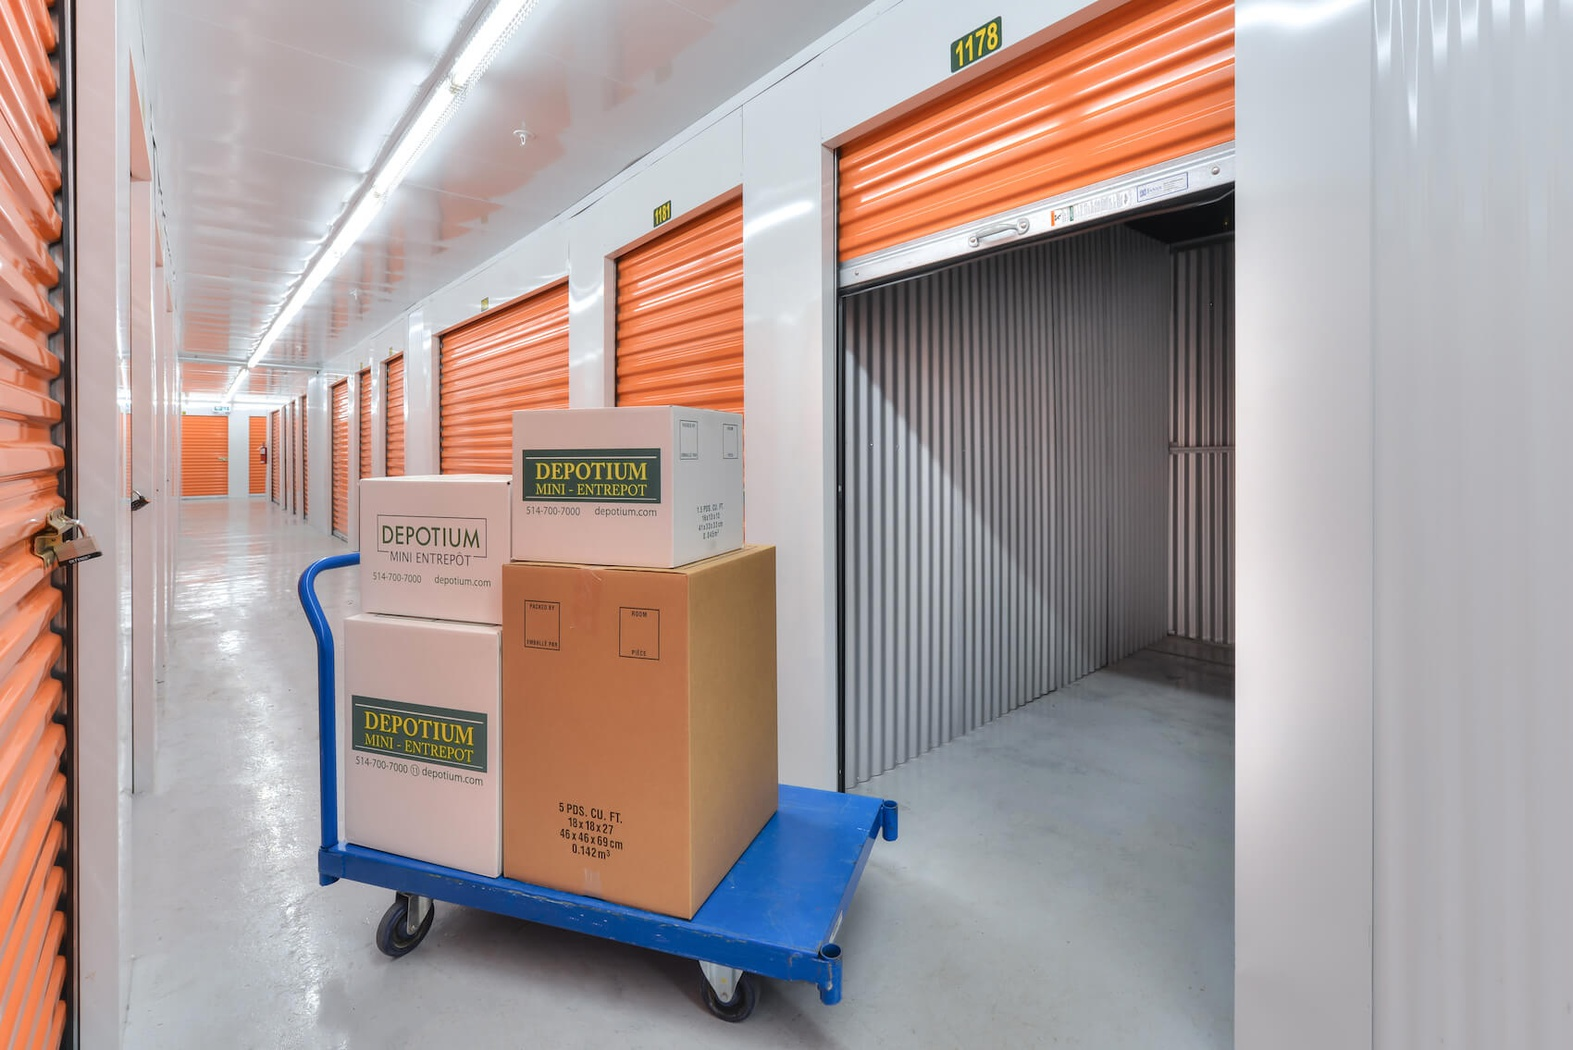 Rent Montreal storage units at 888 Rue Saint-Antoine O. We offer a wide-range of affordable self storage units and your first 4 weeks are free!